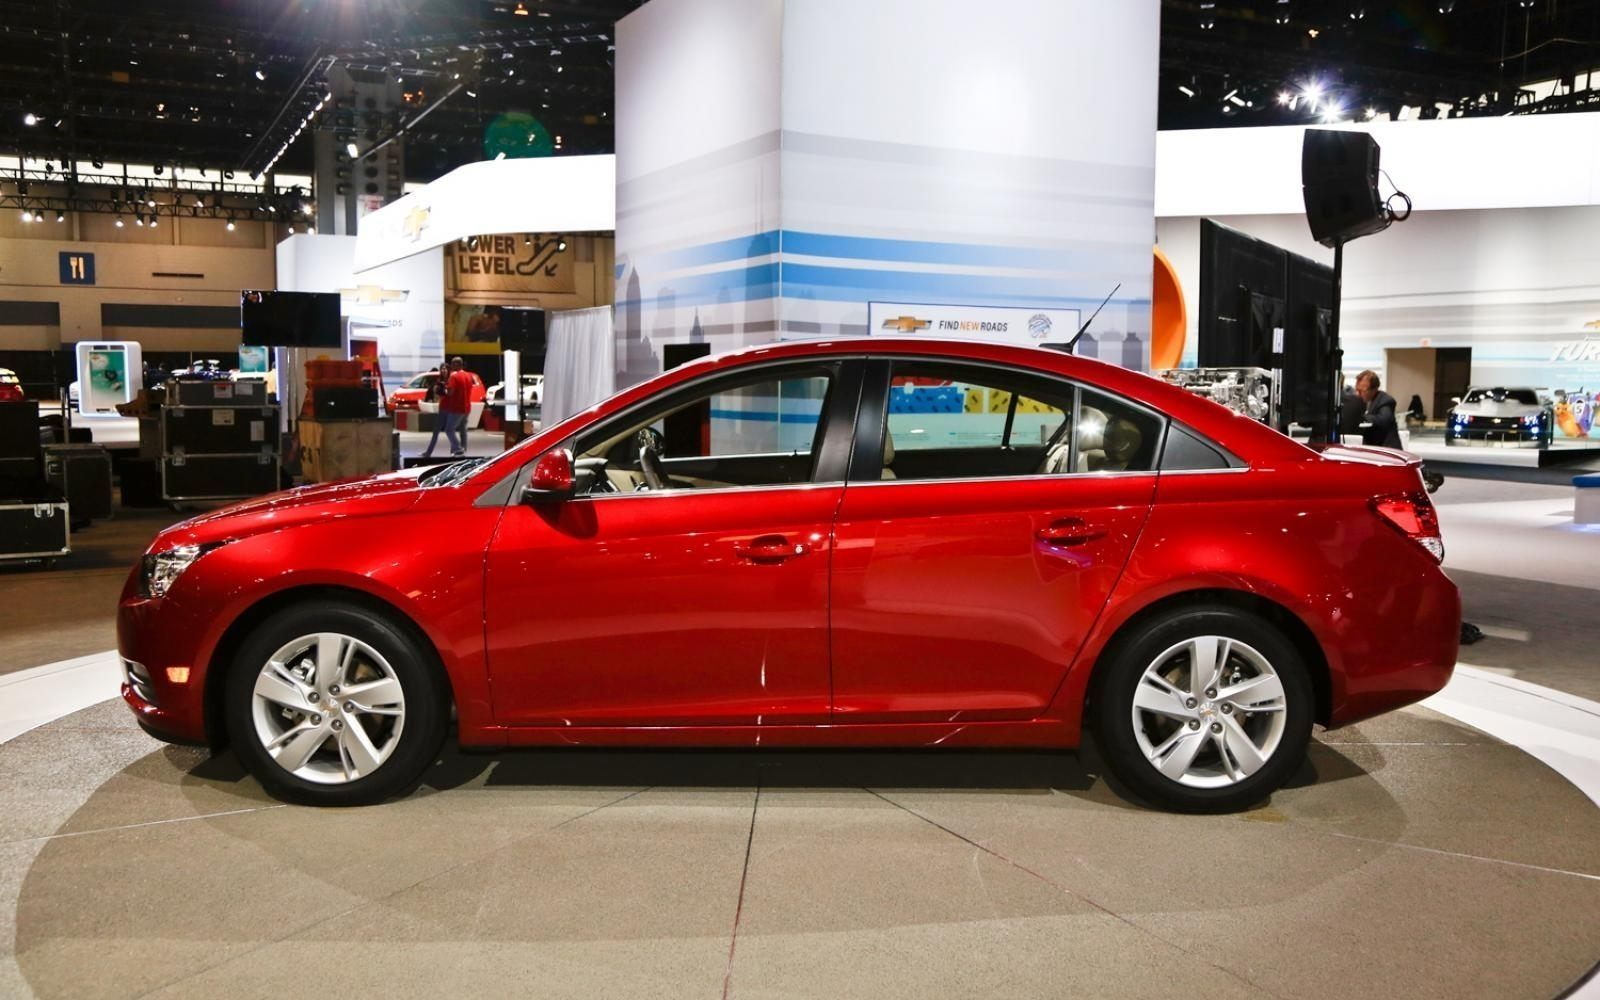 New 2020 Chevrolet Cruze New Engine Chevrolet Cruze Chevrolet